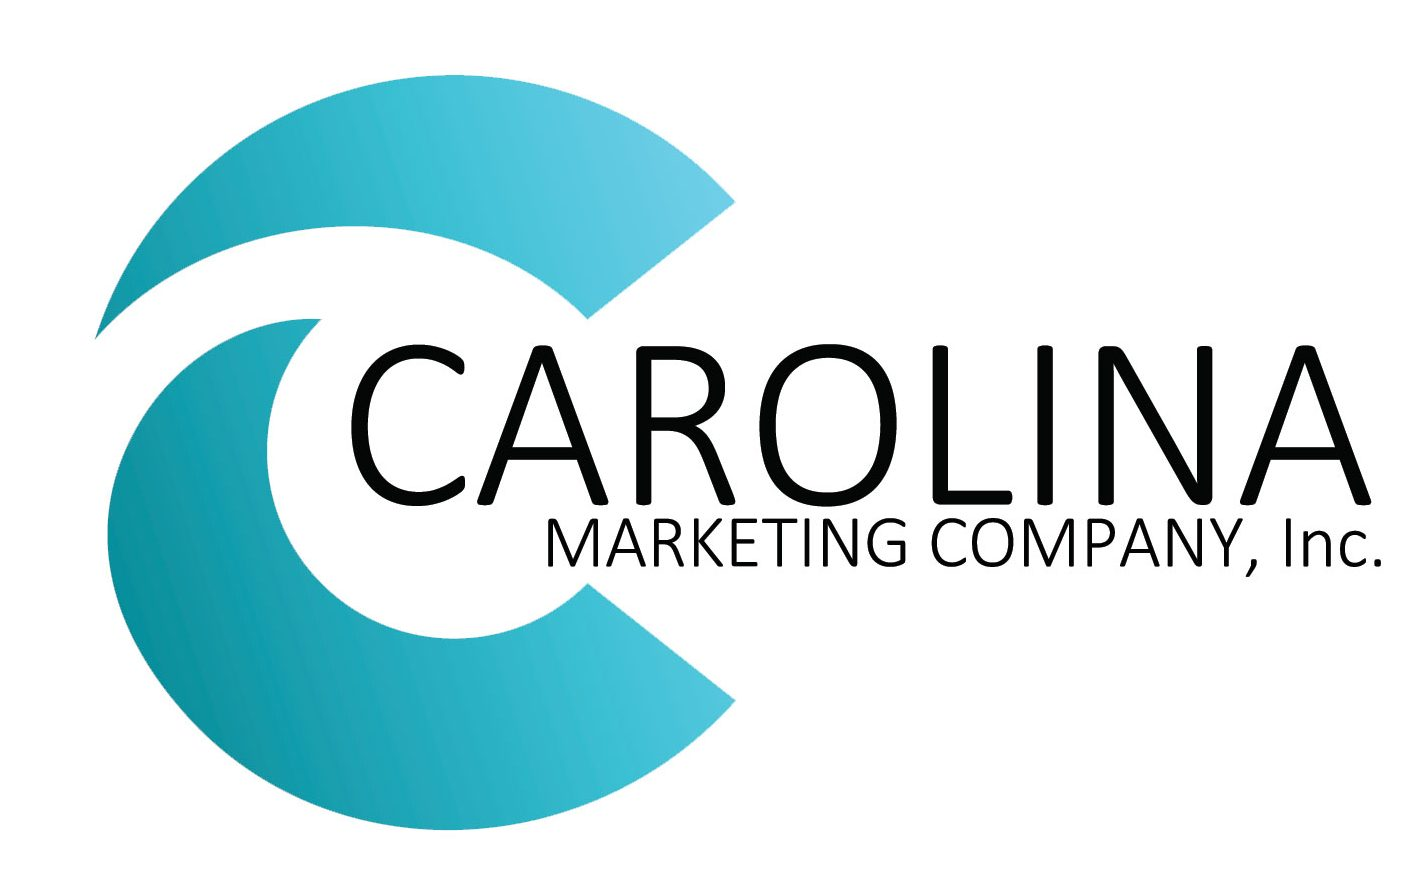 Carolina Marketing Company